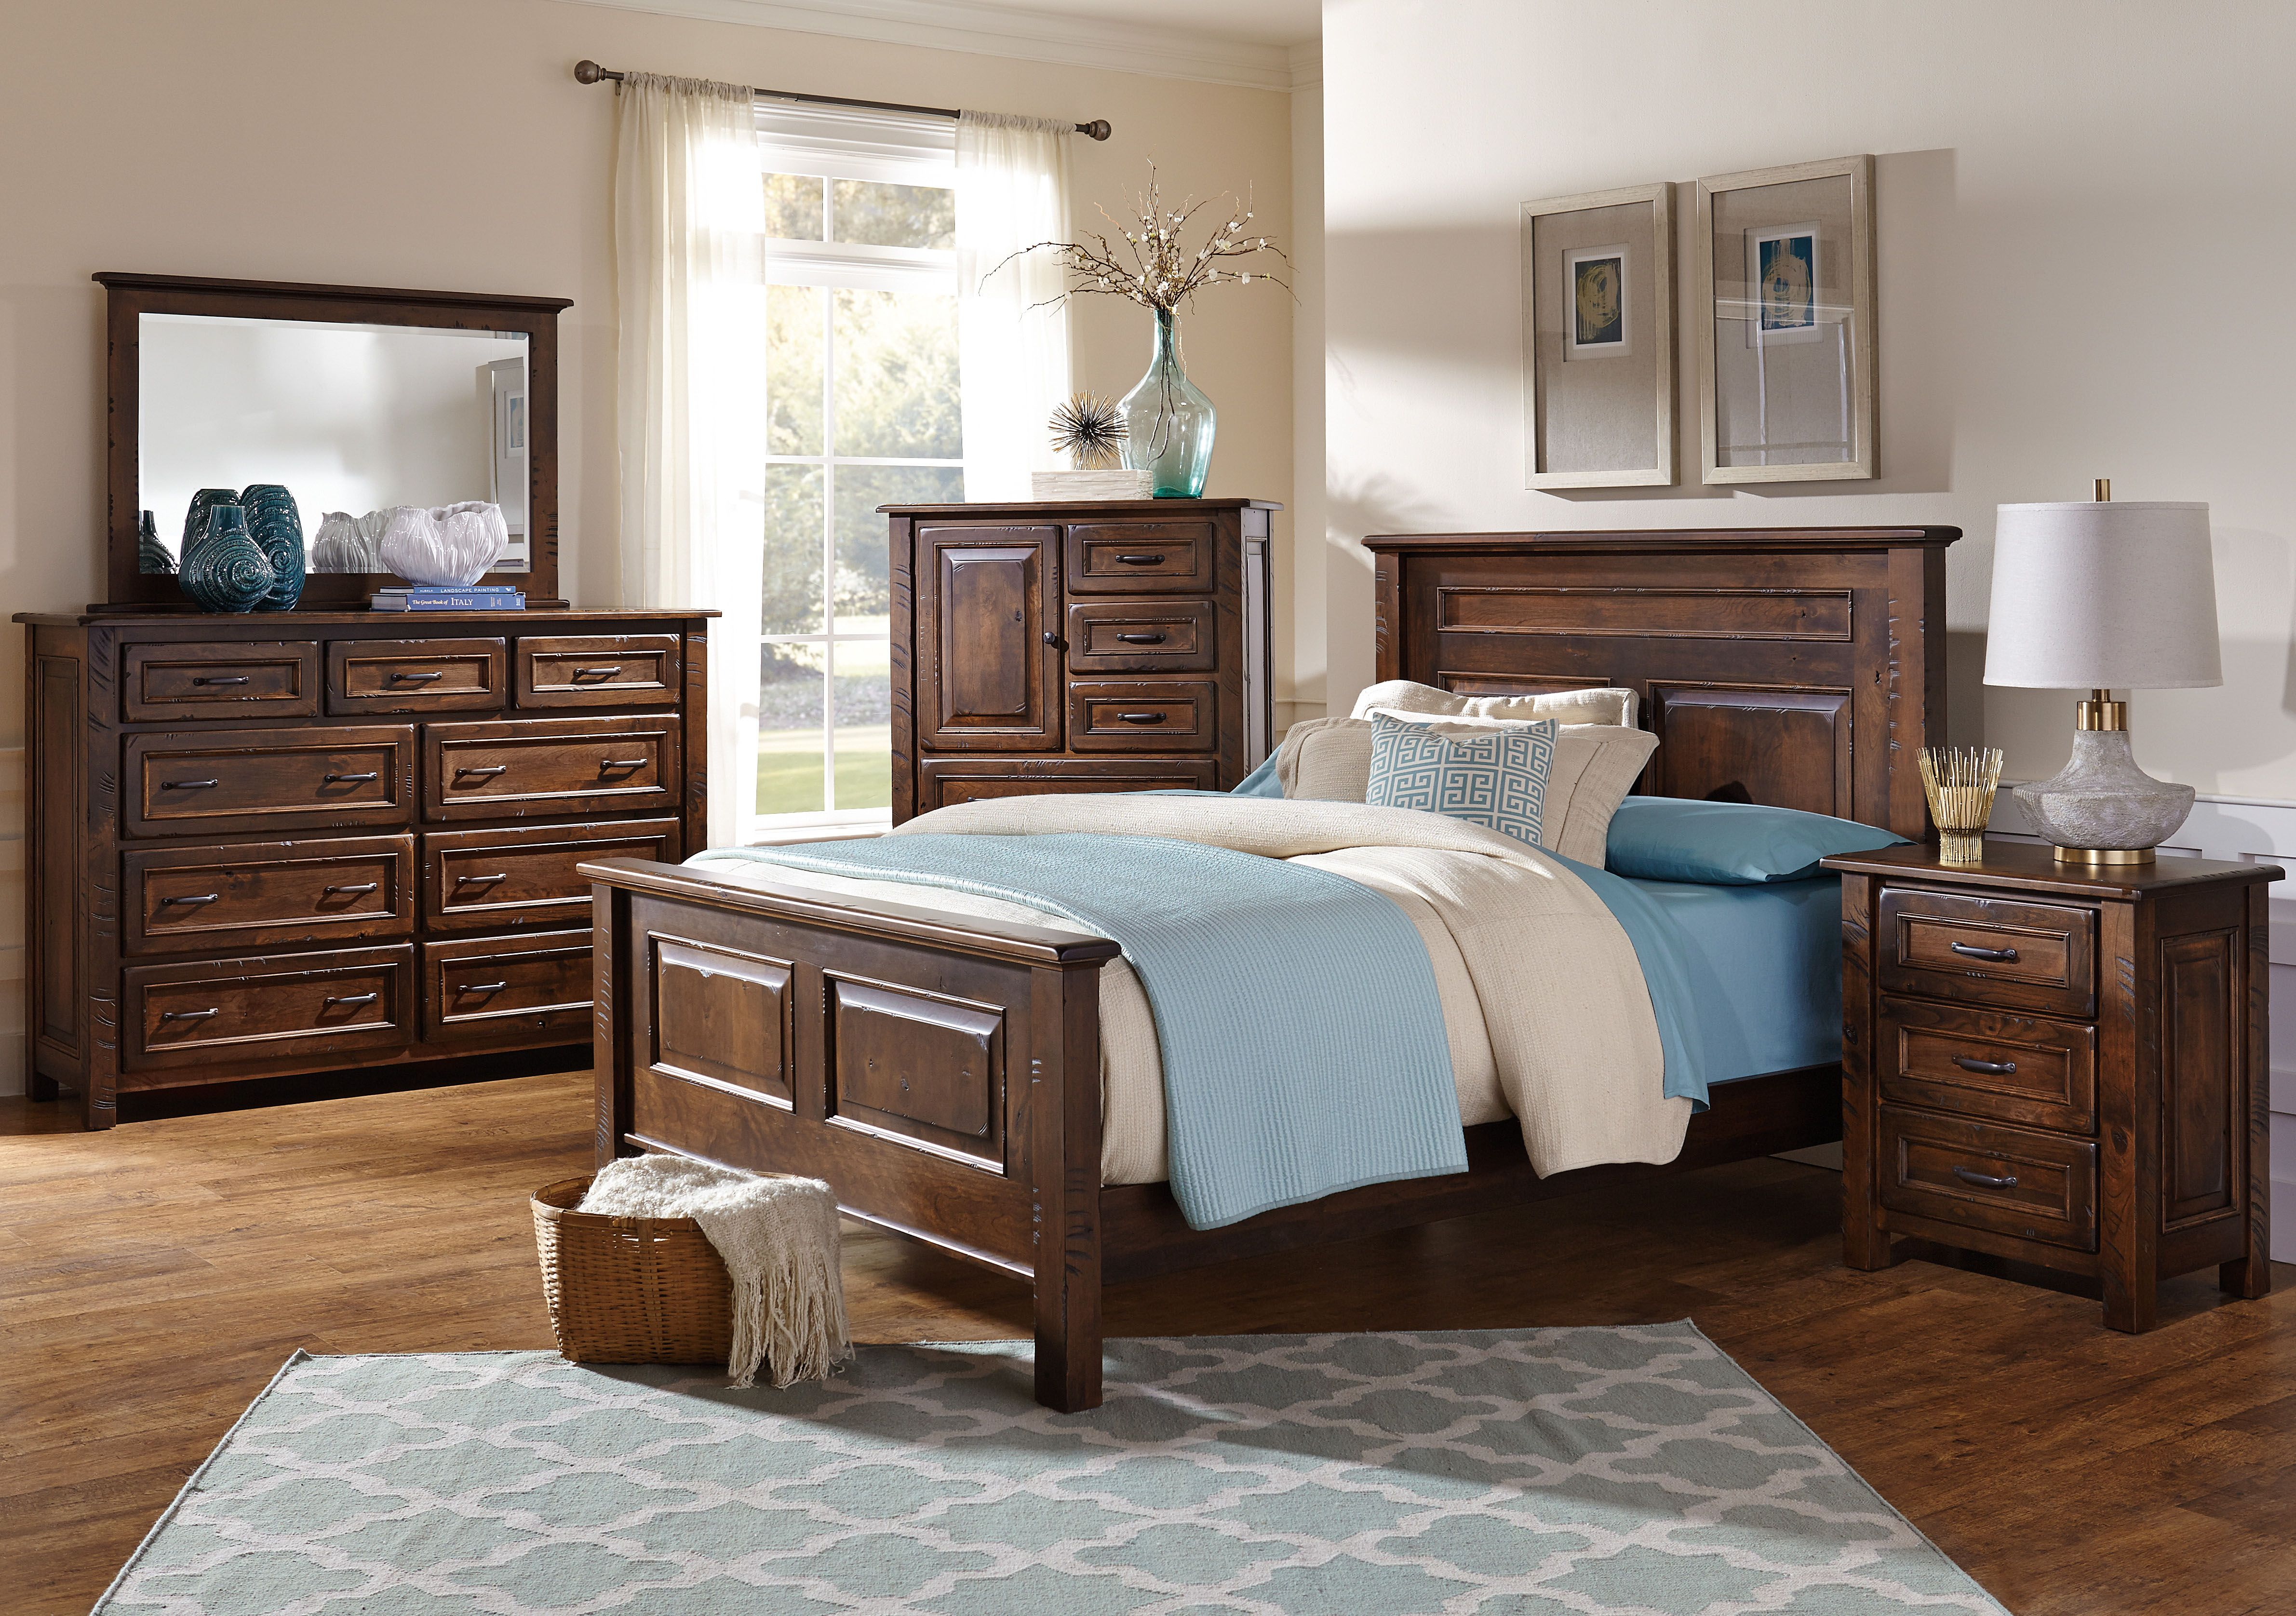 ideas bedroom wood the decoration with amish cabinet designs getting suitable furniture